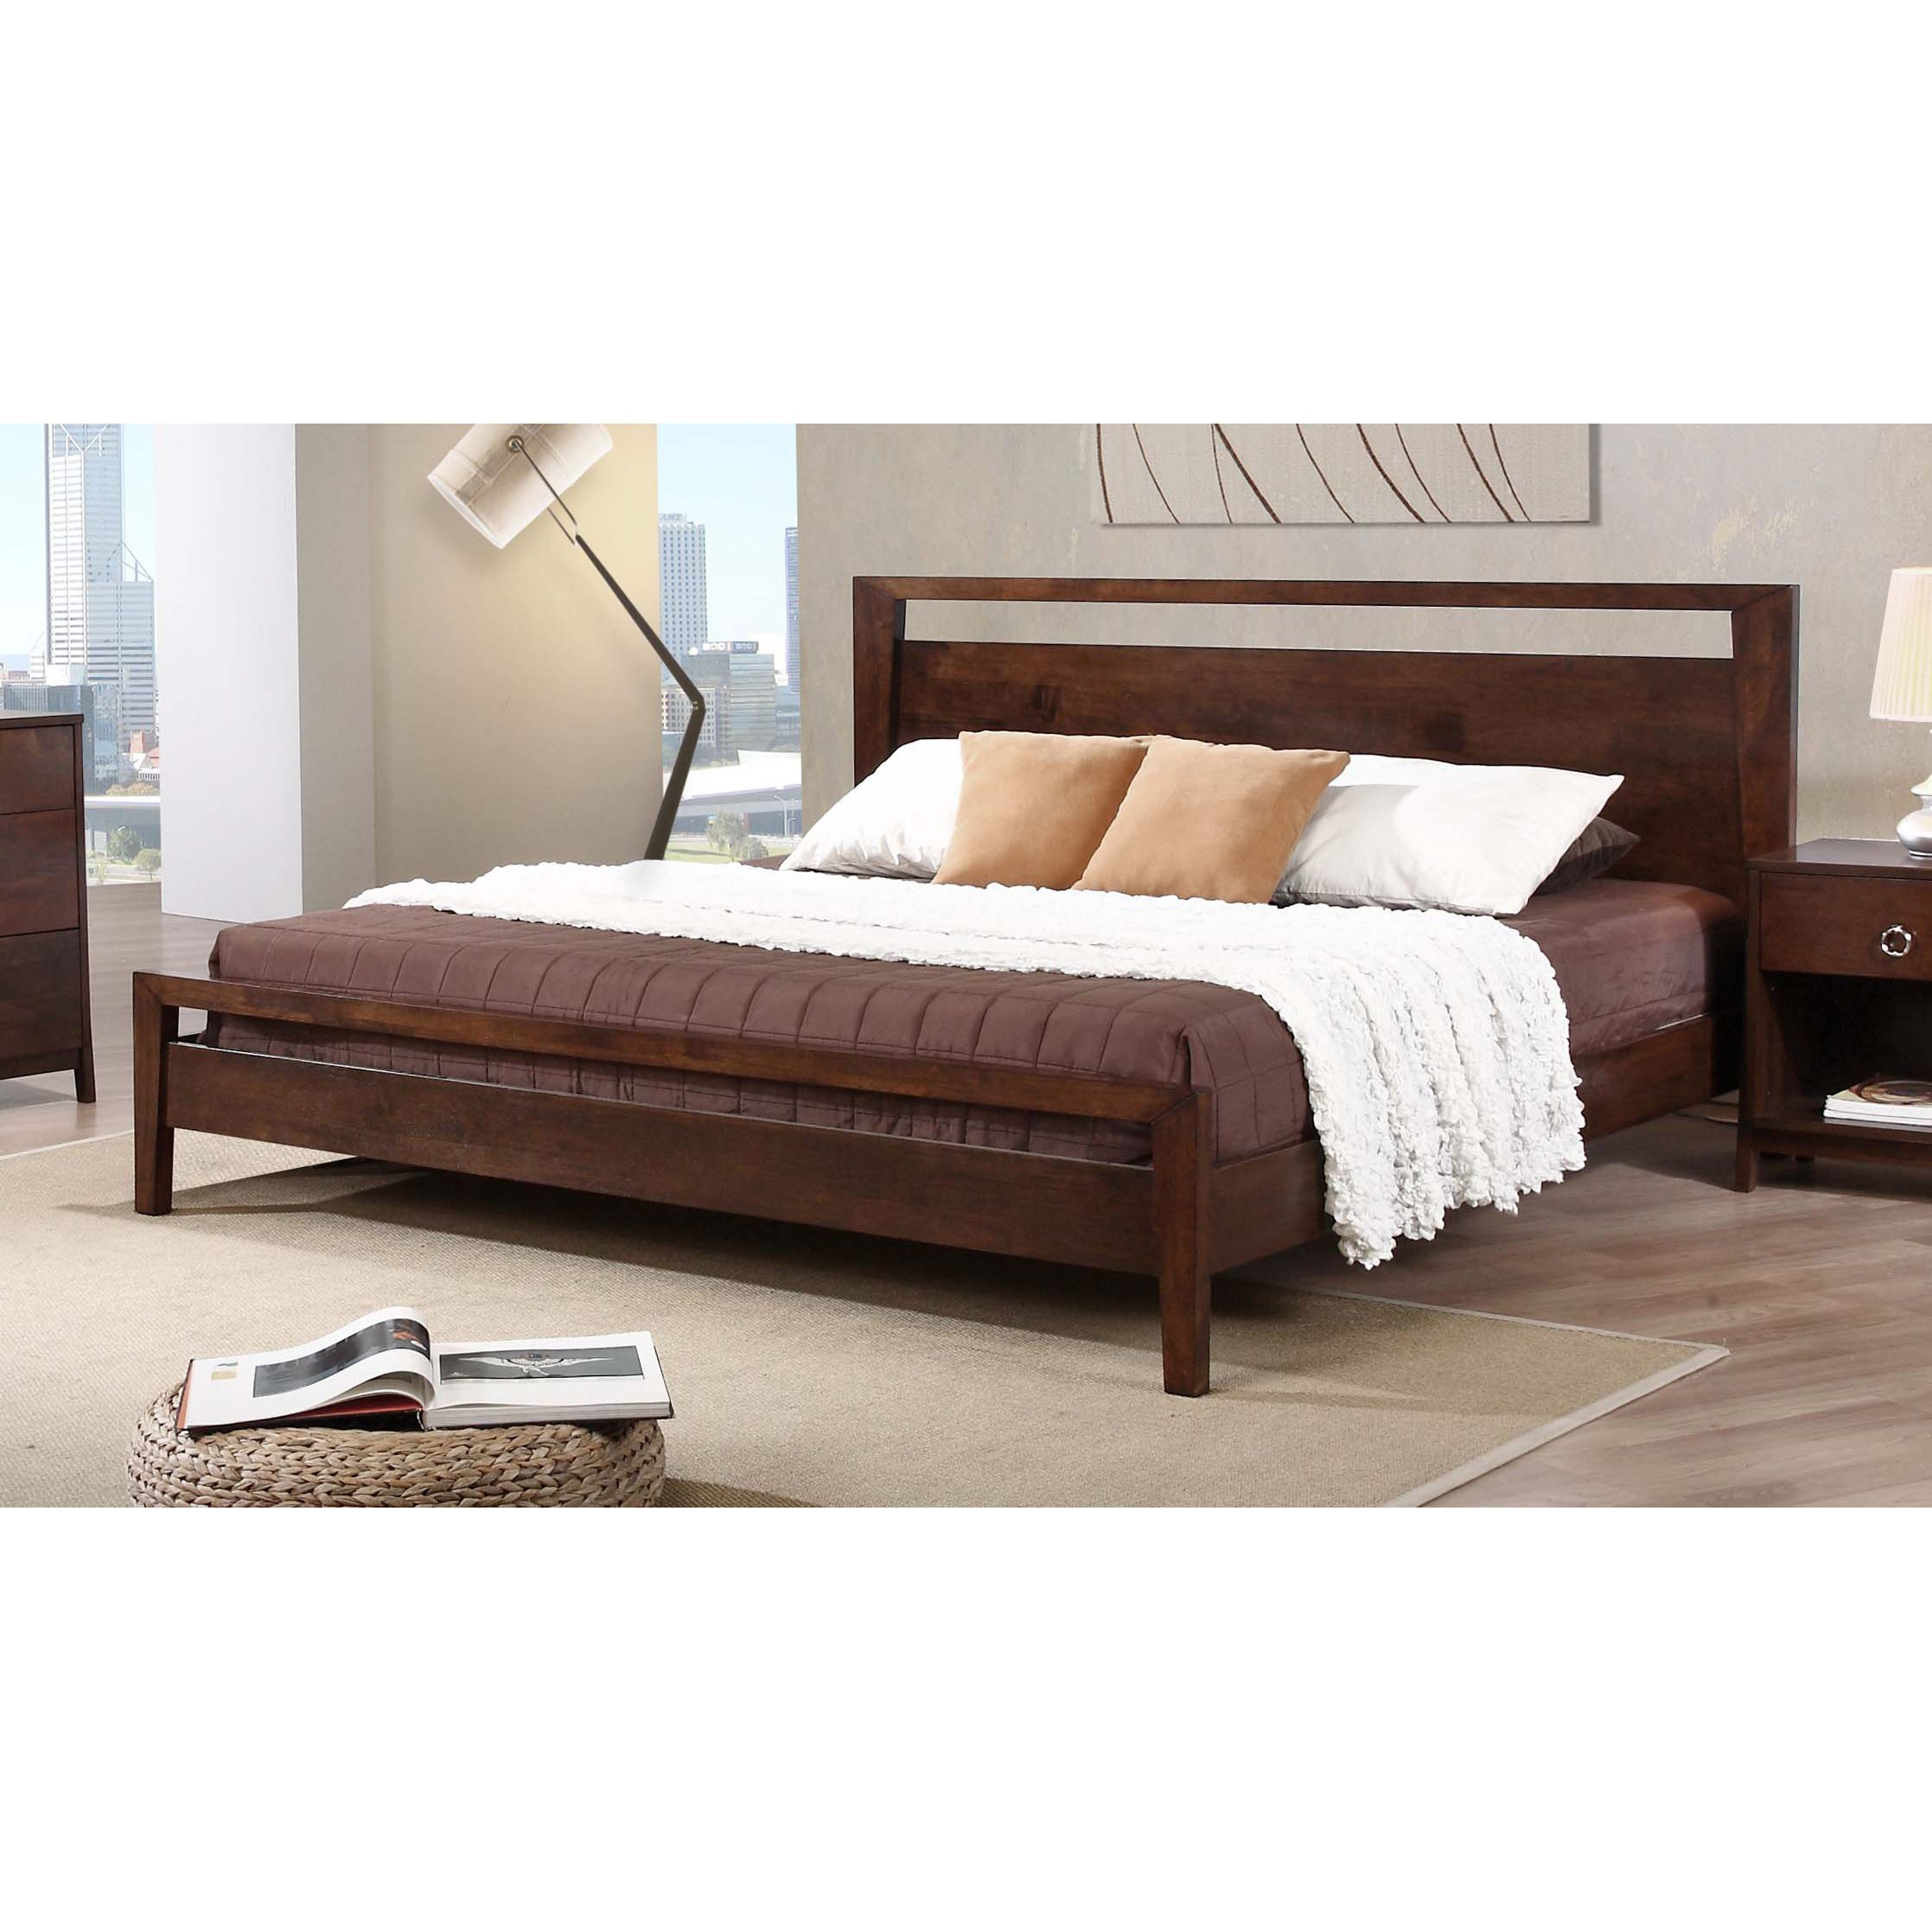 Sturdy Bedroom Furniture Kota King Size Platform Bed By I Love Living To Be Great Deals